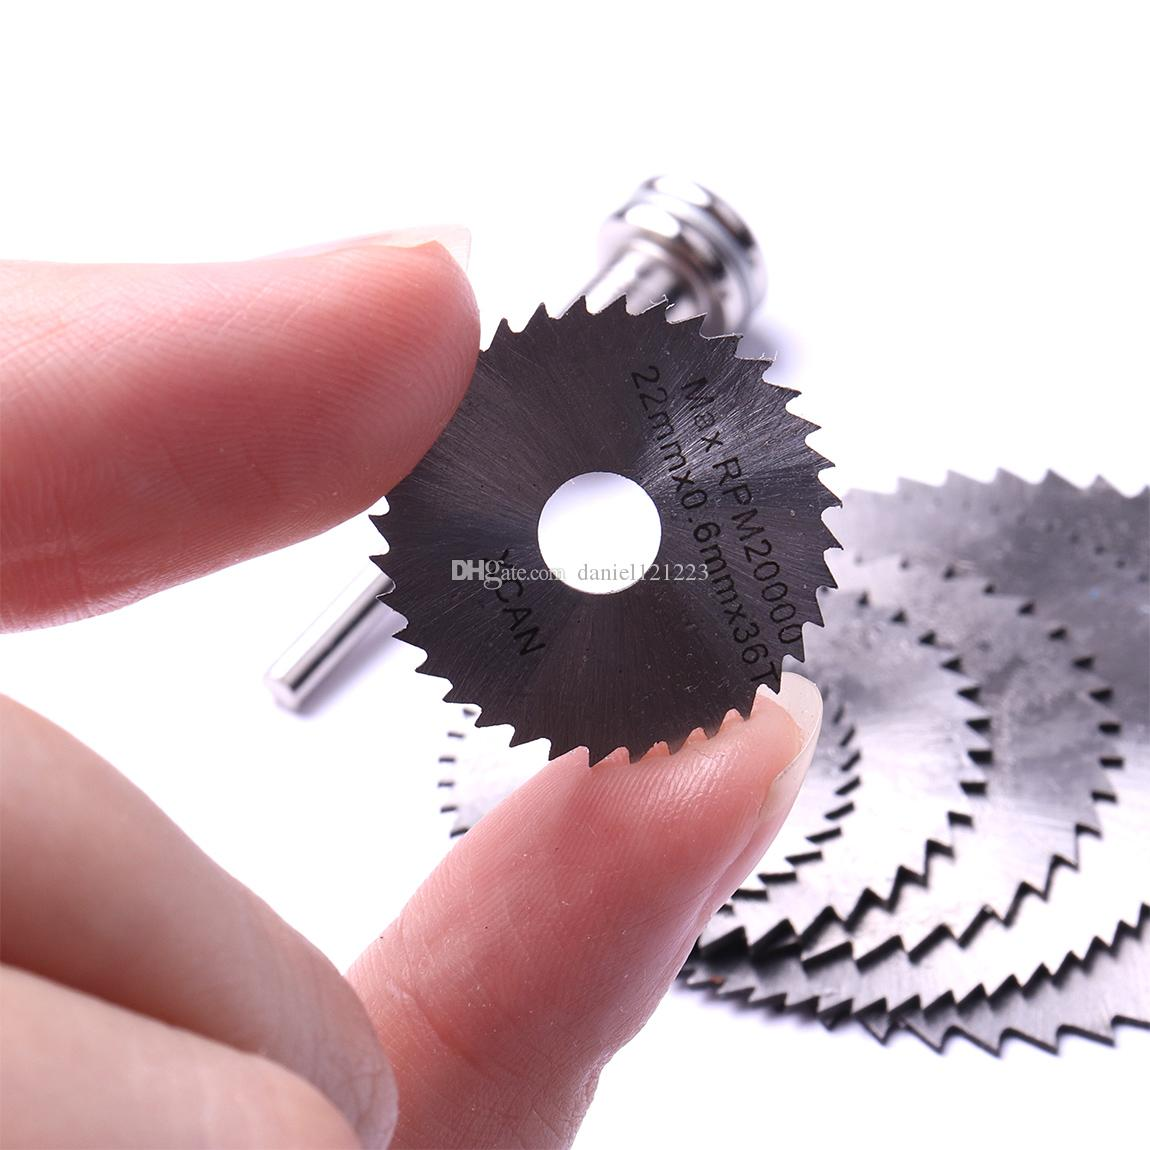 1/8 inch Shank High Speed Steel Mini Circular Saw Blades with Mandrels for Rotary Tool